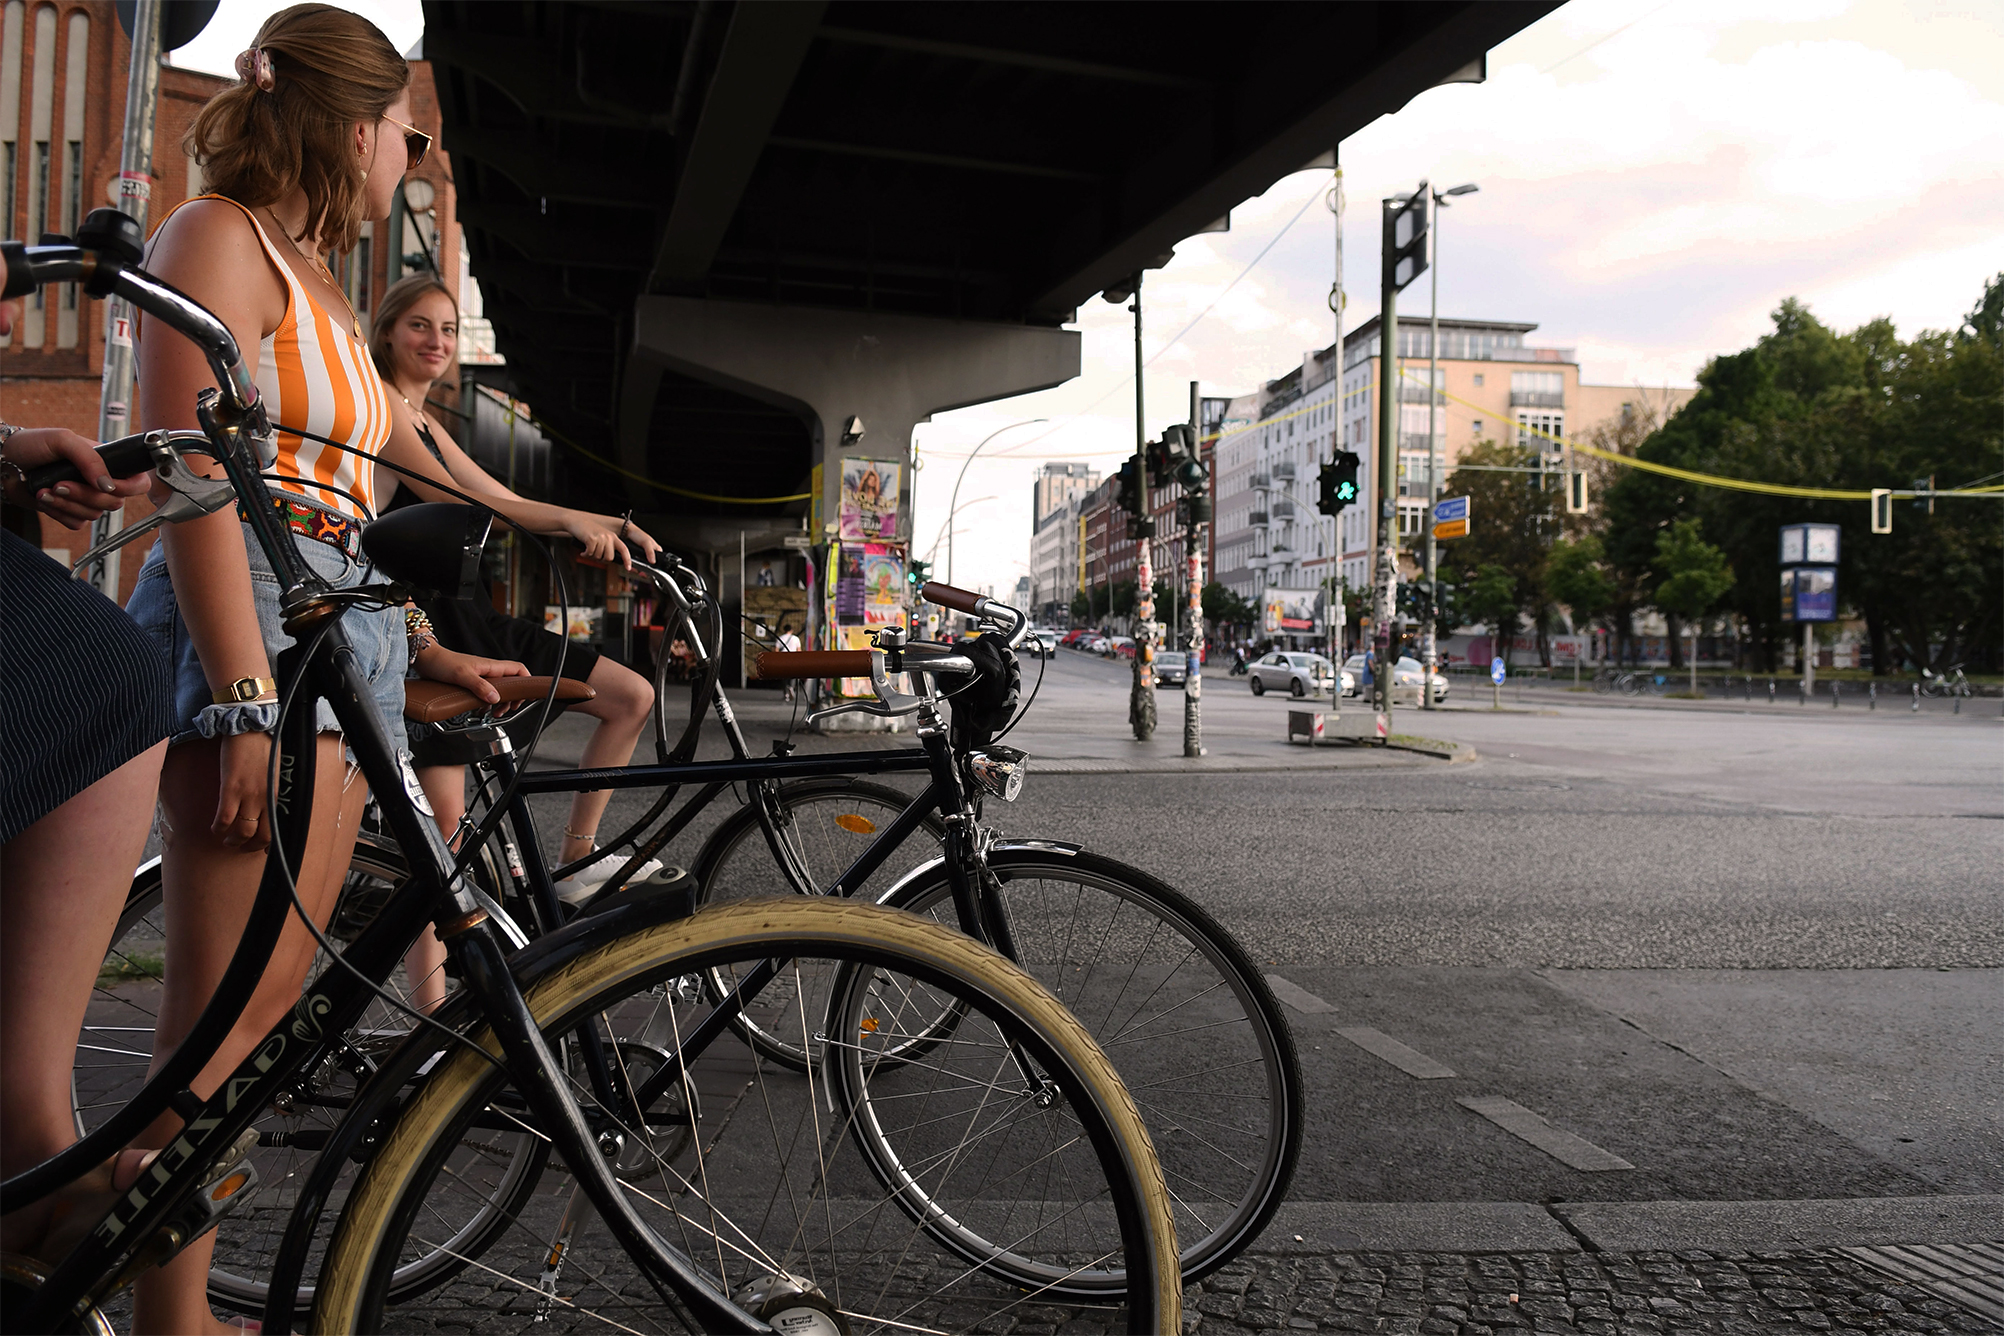 A group of cyclists stand on the side of the road under an underground bridge in Berlin.